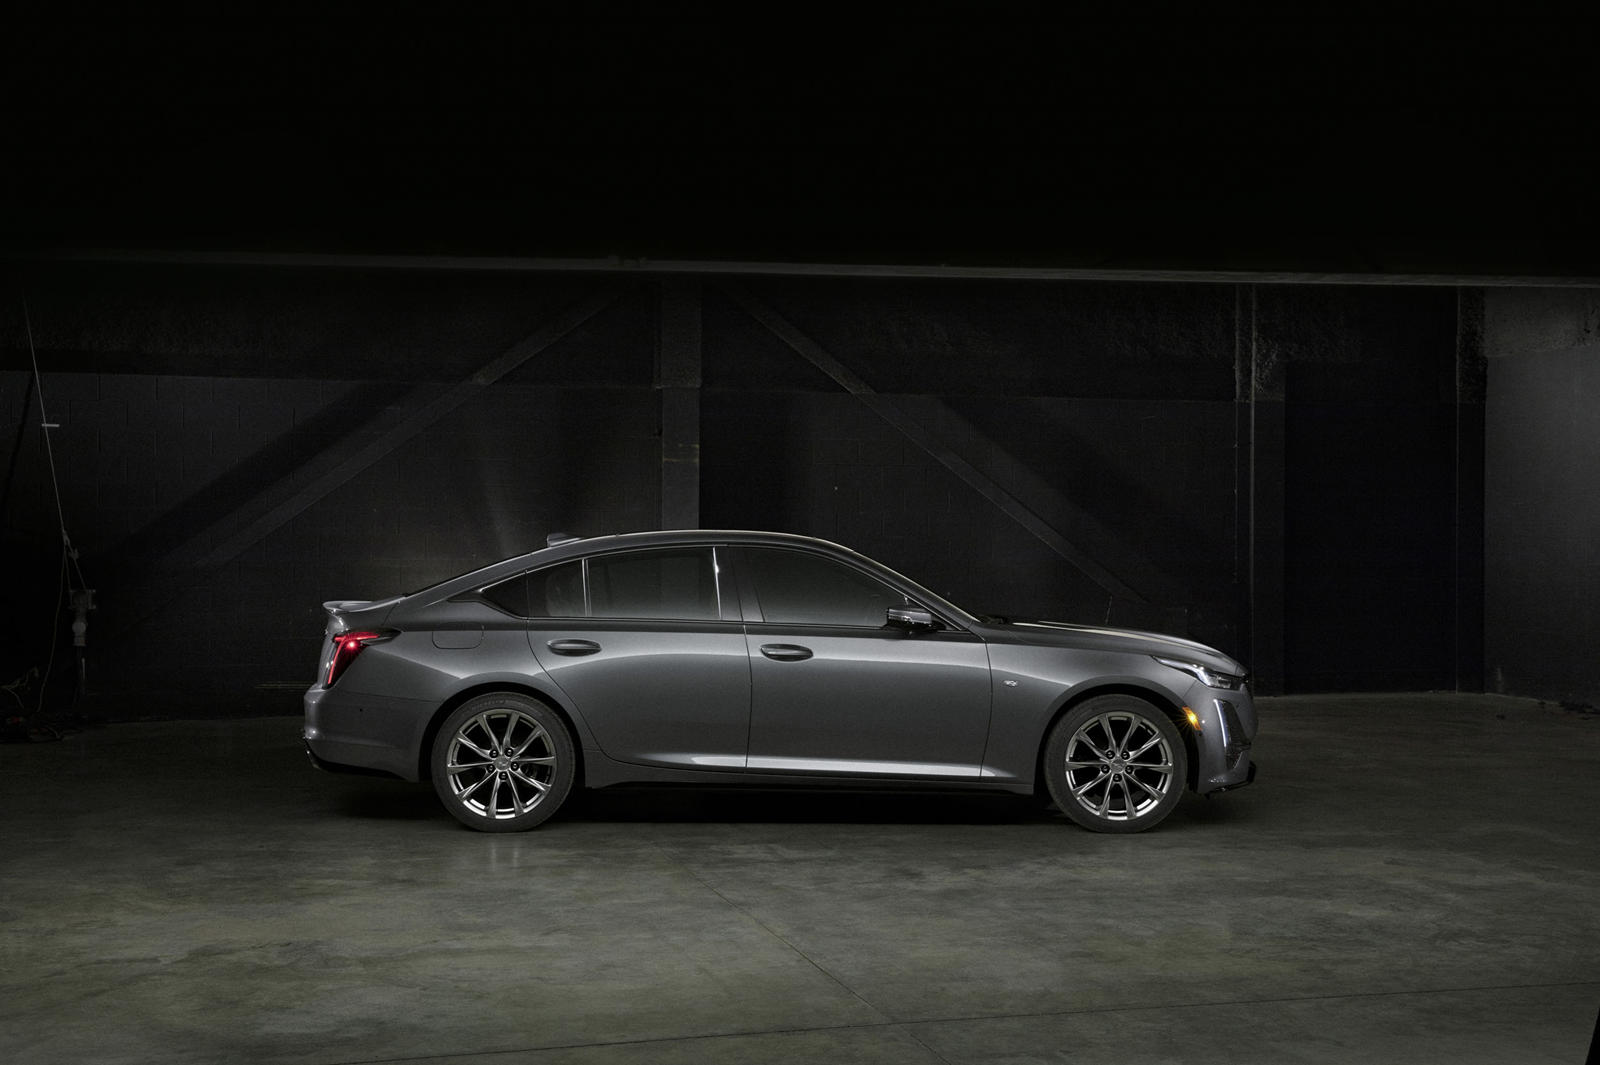 2020 Cadillac Ct5 Review Ratings Mpg And Prices